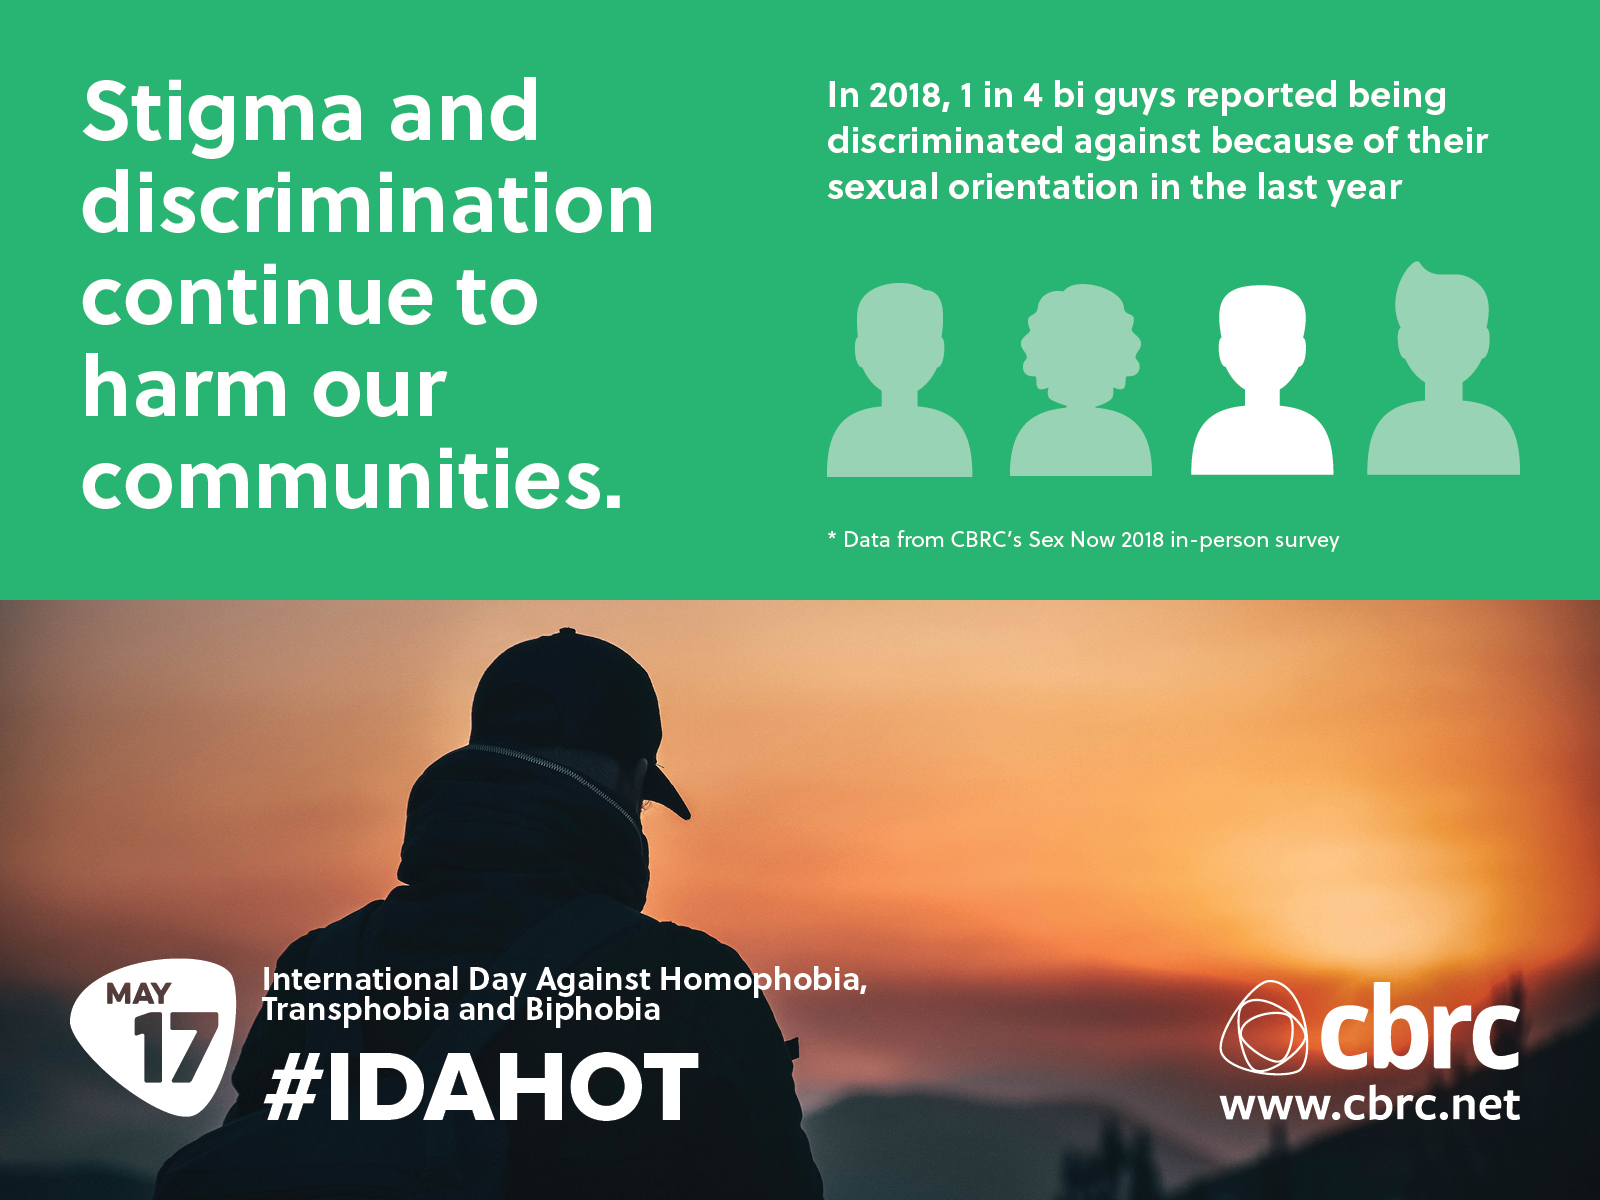 Infographic reading: Stigma and discrimination continue to harm our communities. In 2018, 1 in 4 bi guys reported being discriminated against because of their sexual orientation in the last year.\